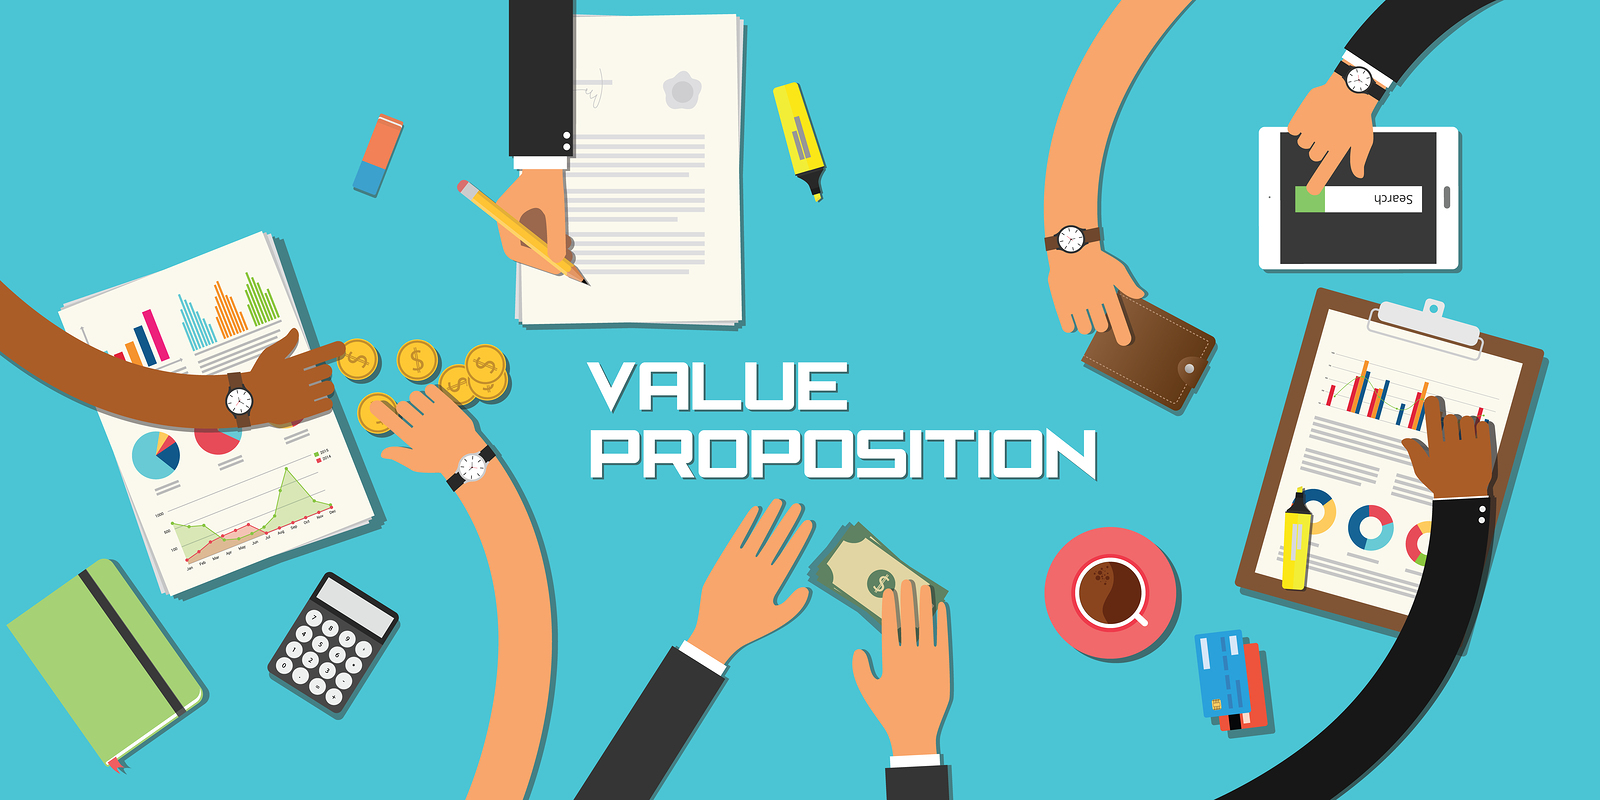 scaling the revenue engine chapter 5 value proposition ceo quest value proposition concept team work business marketing together hand and table